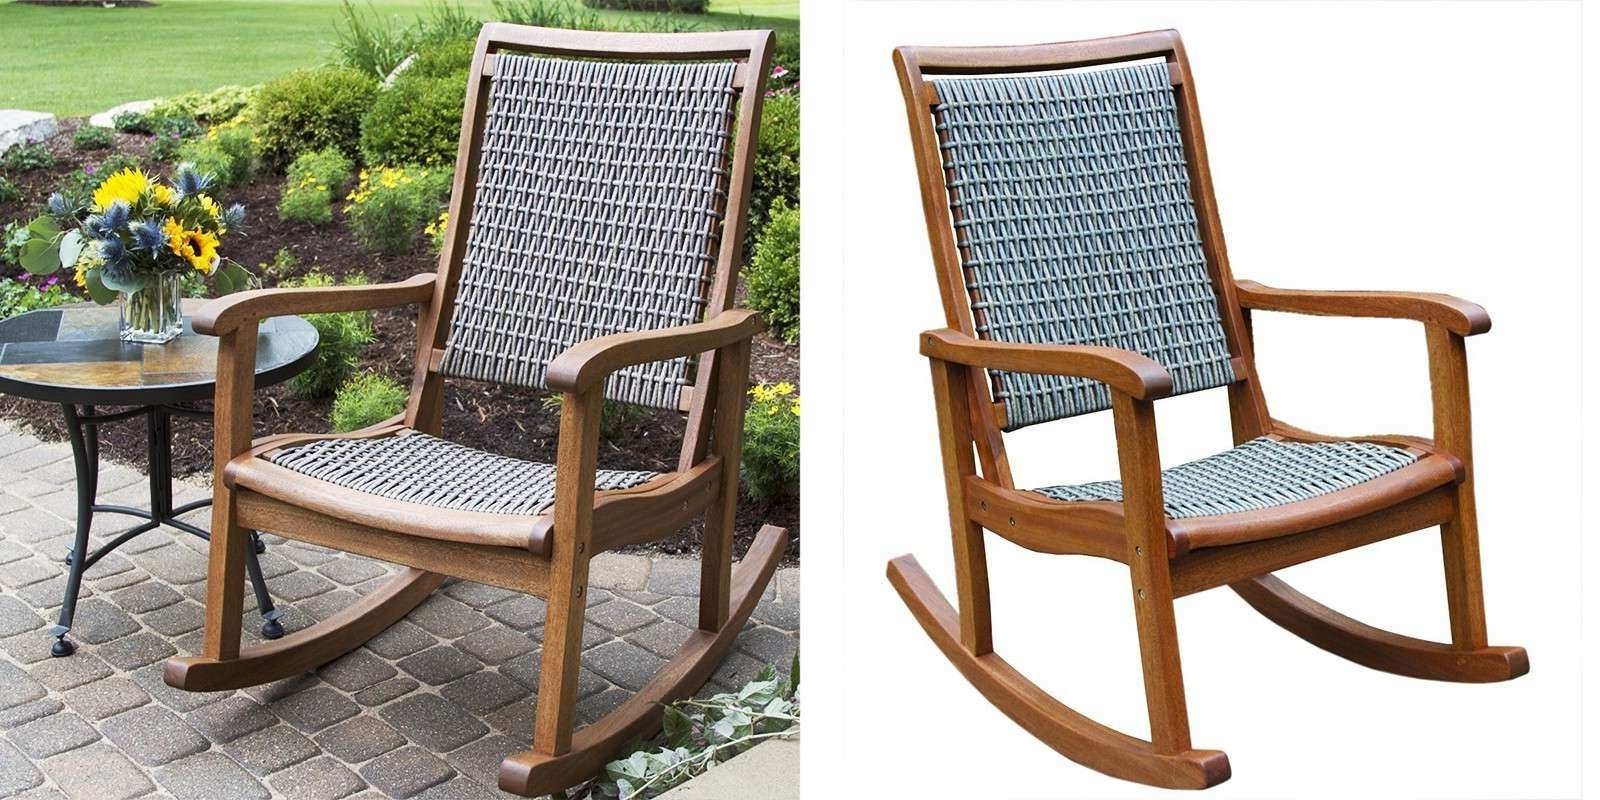 Widely Used Modern Patio Rocking Chairs Throughout Resin Outdoor Furniture Awesome Resin Patio Rocking Chairs Modern (View 15 of 15)